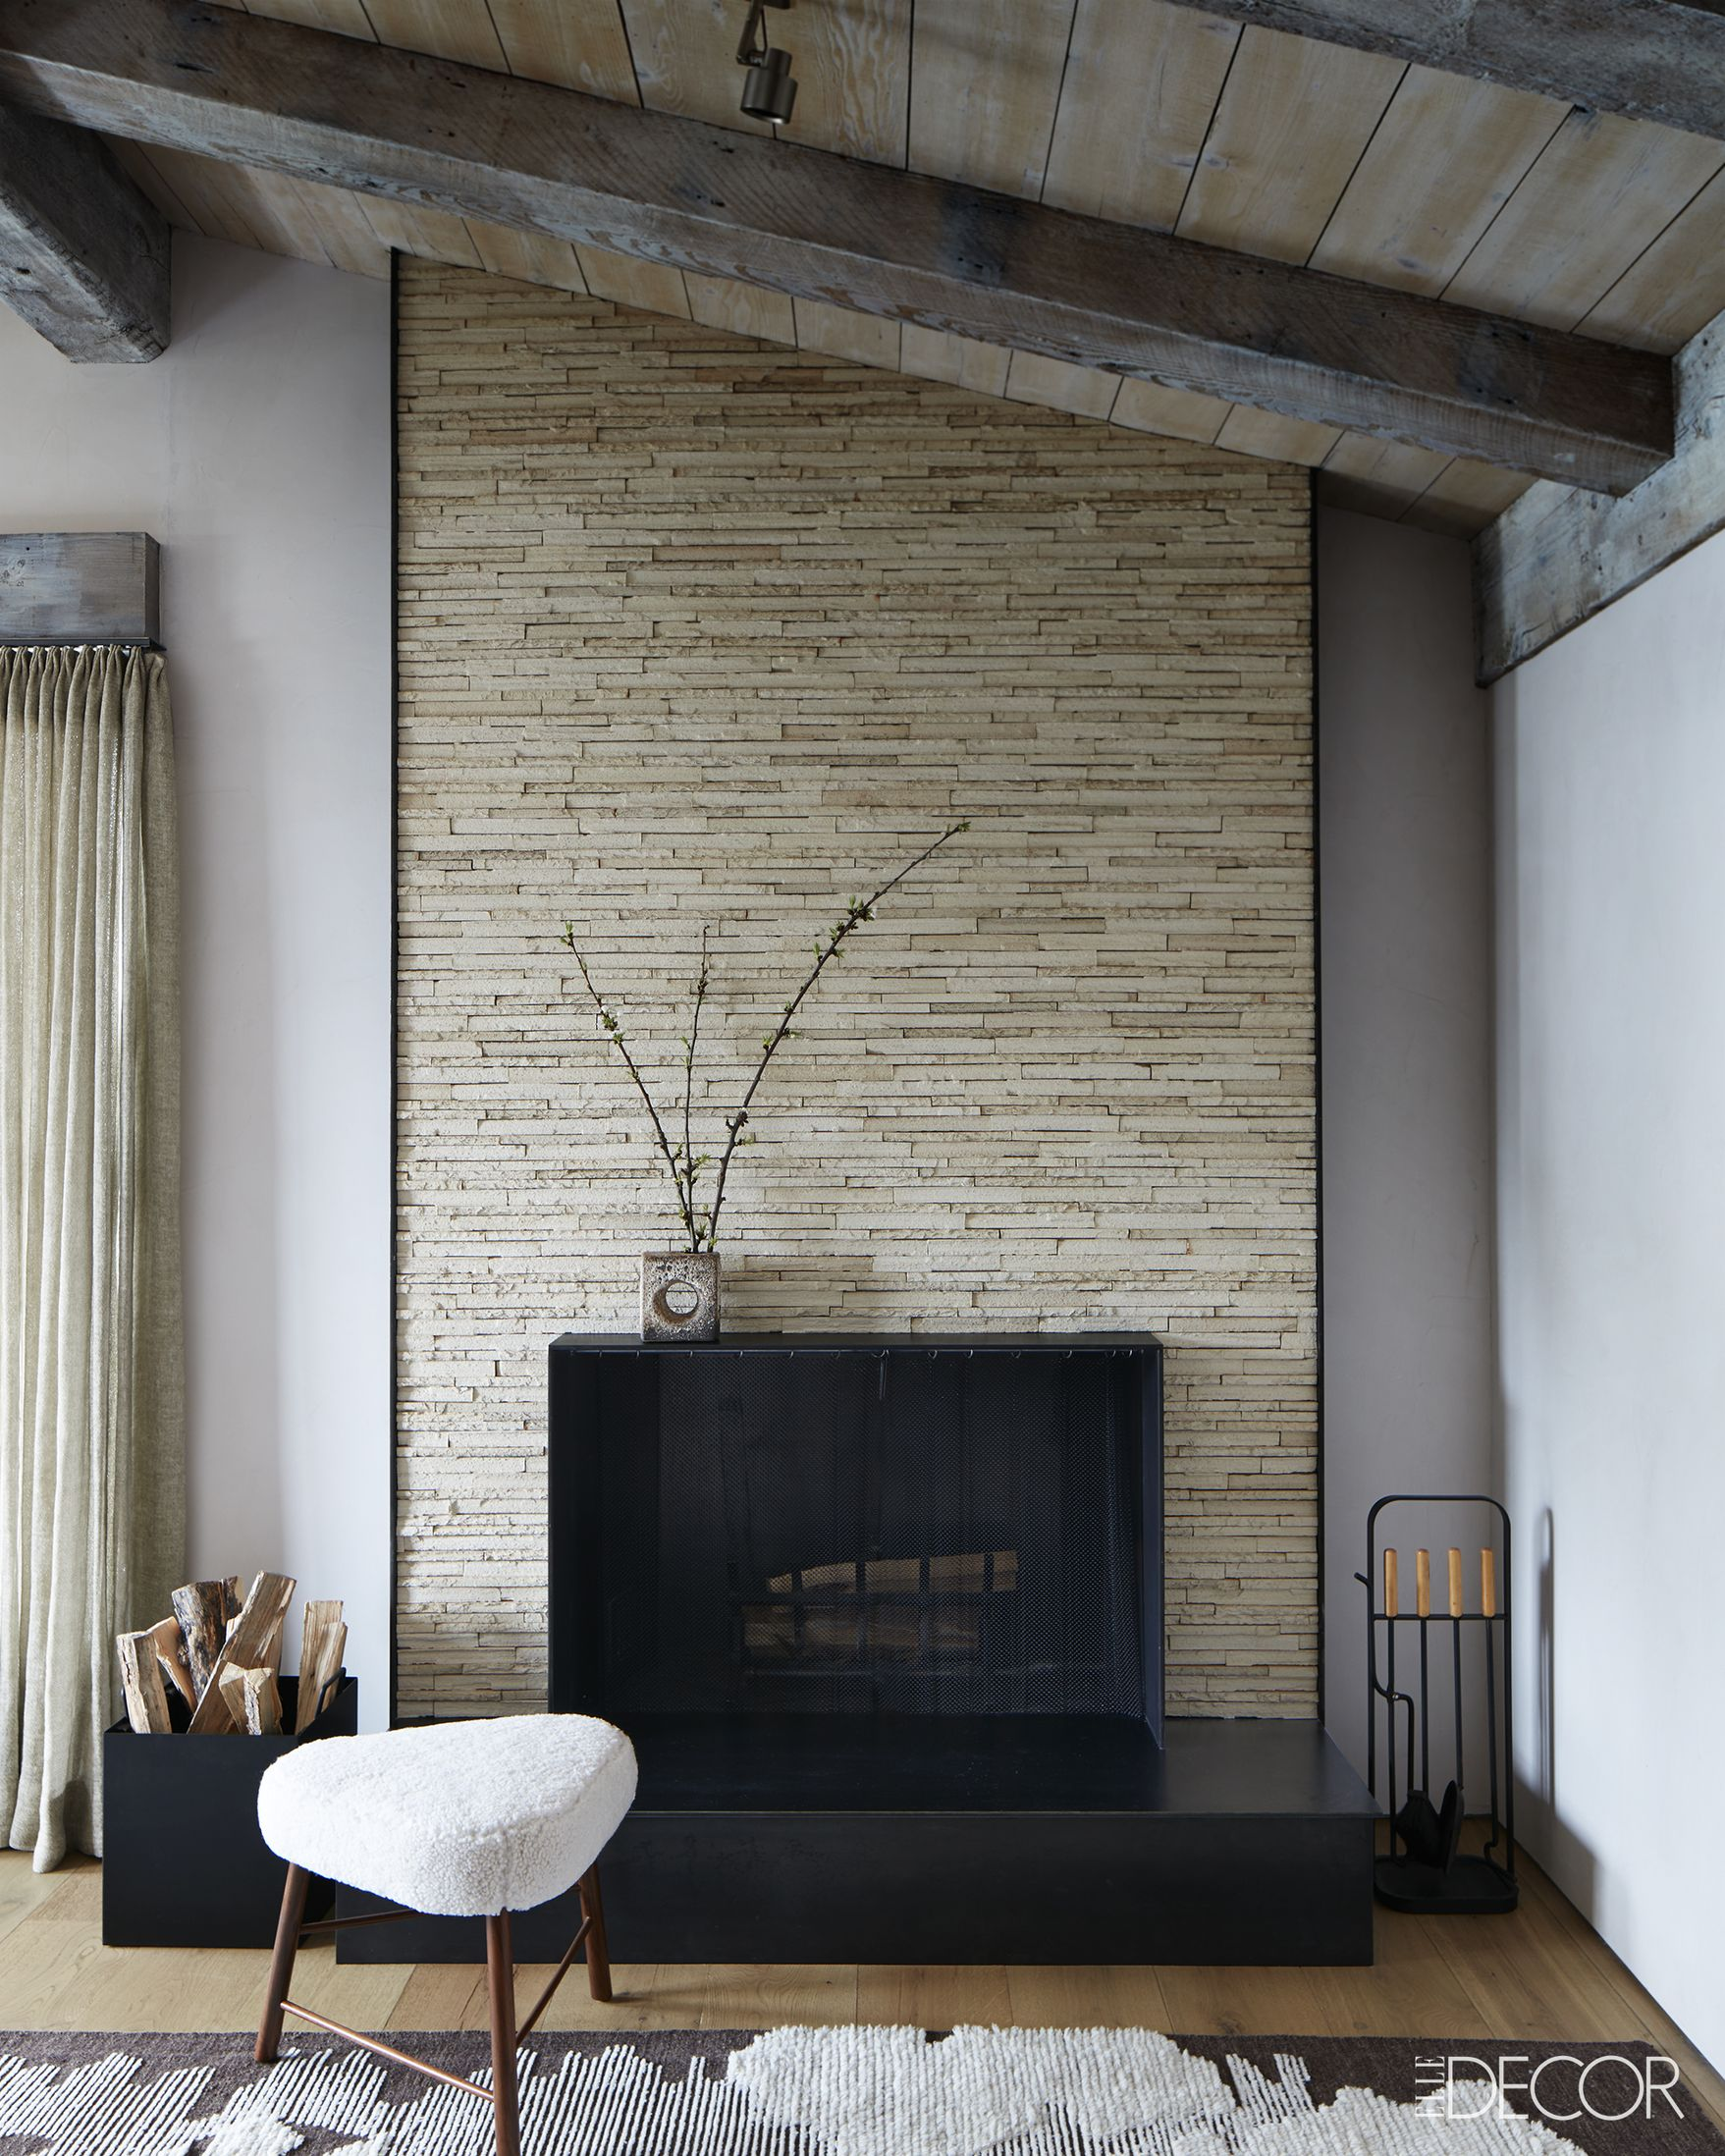 Rustic And Modern Fireplace: Get The Look! Modern Rustic Interior Design In A Masculine